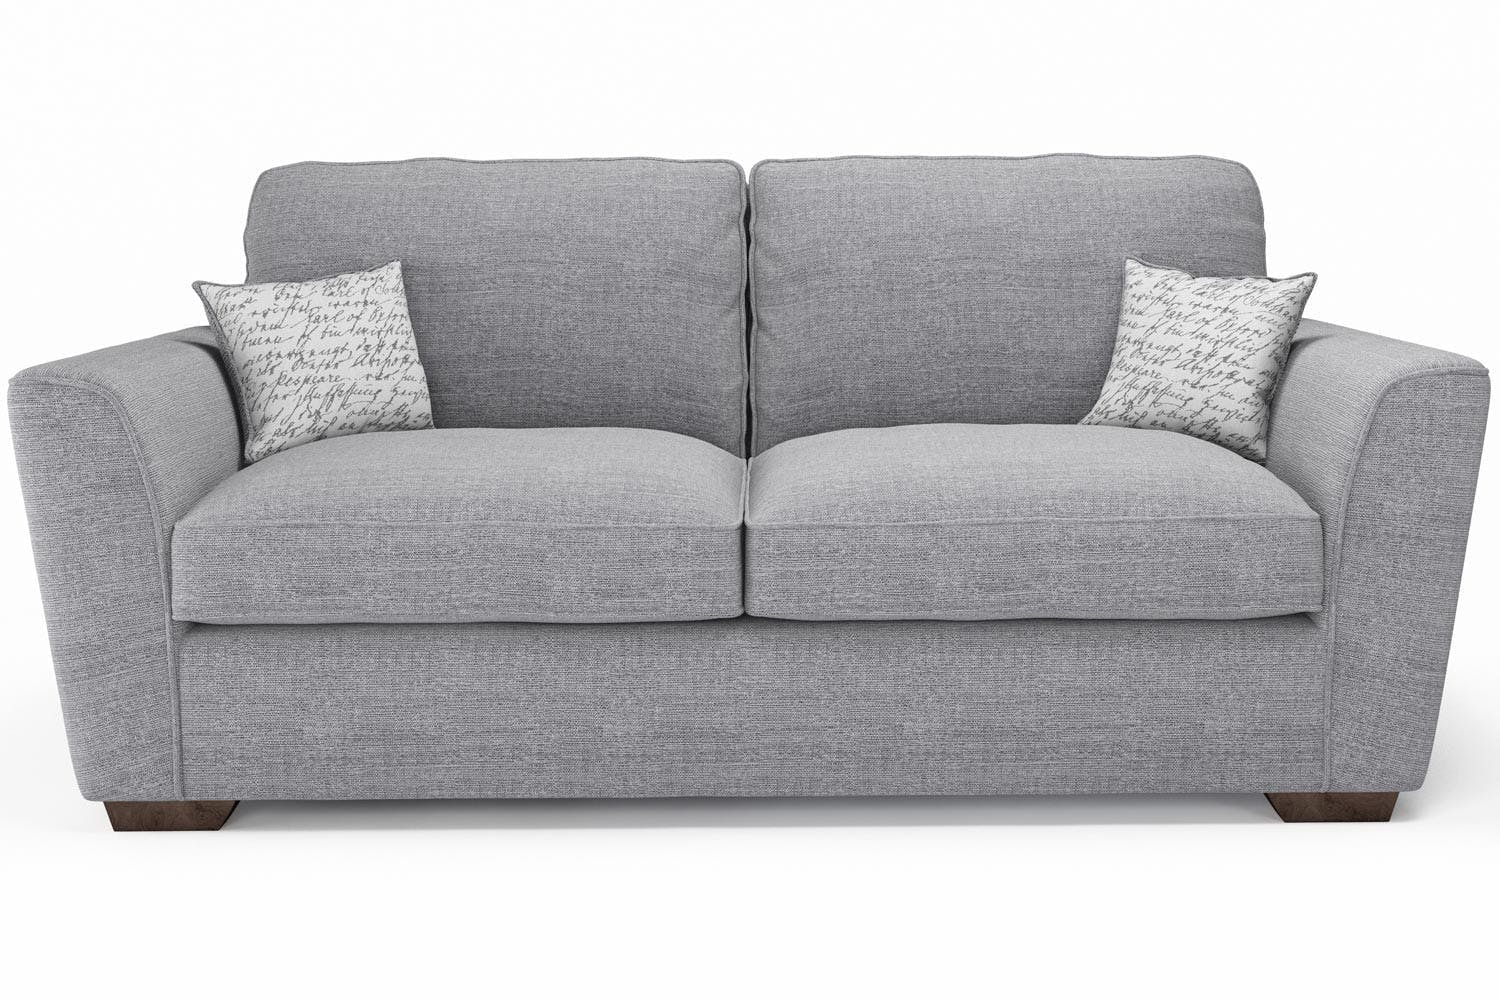 Miraculous Fantasia 4 Seater Sofa Colour Options Best Image Libraries Sapebelowcountryjoecom